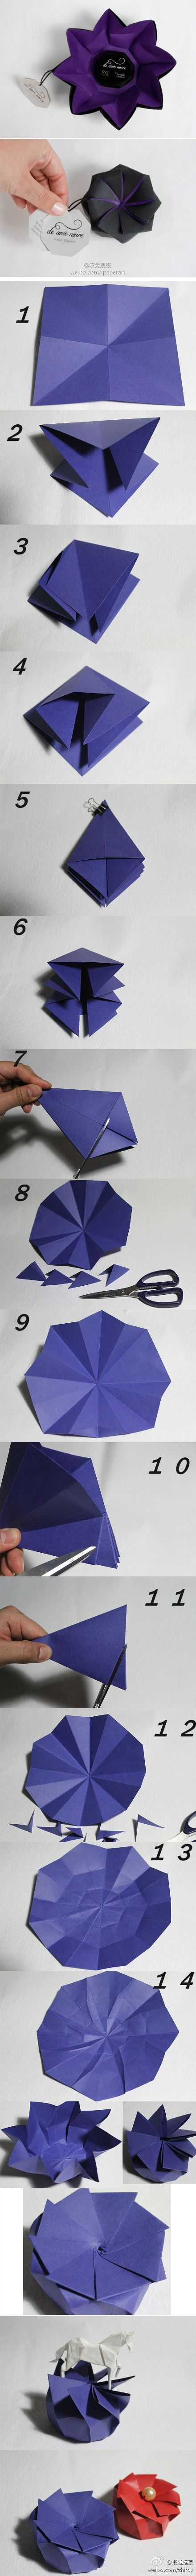 Origami pop up box template PD if i'm feeling up for a challenge...